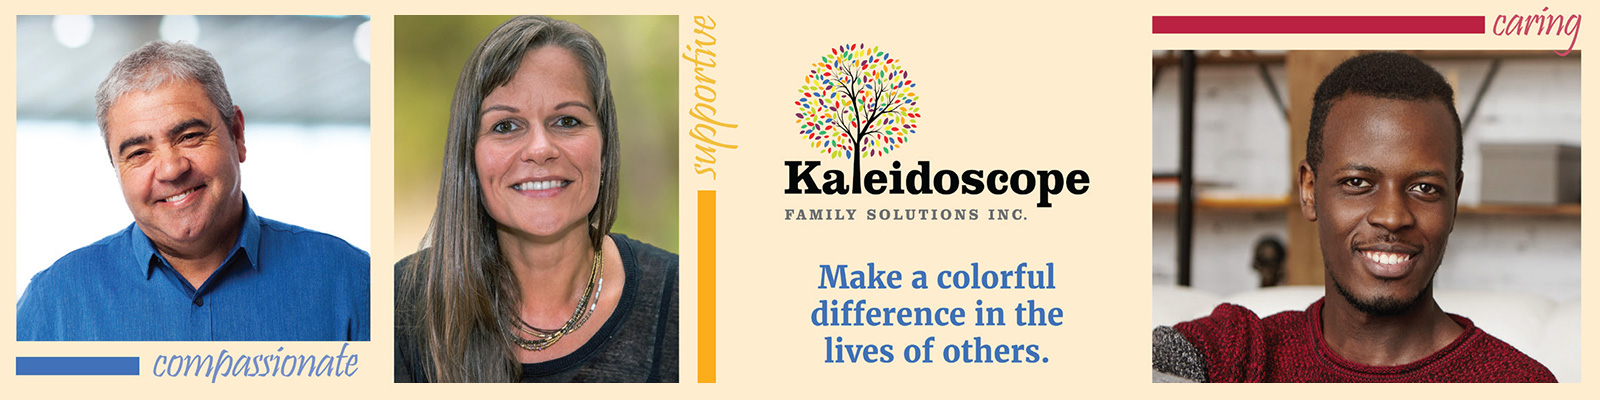 Kaleidoscope Family Solutions Inc - One-on-One banner image